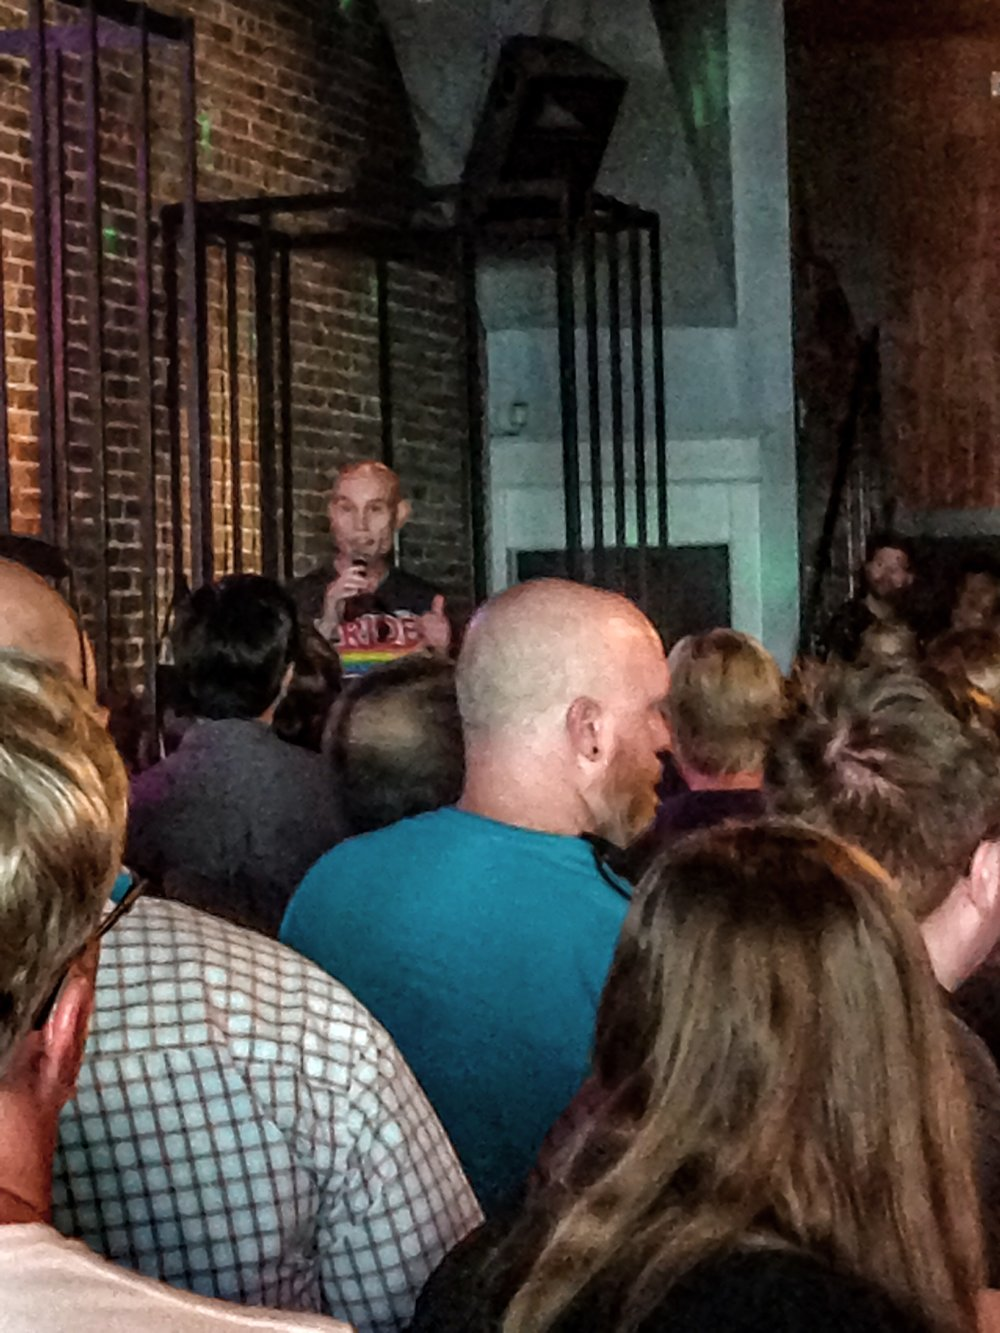 Dave Bentlin commemorates the victims of the Pulse nightclub shootings at Bloomington's The Bistro.